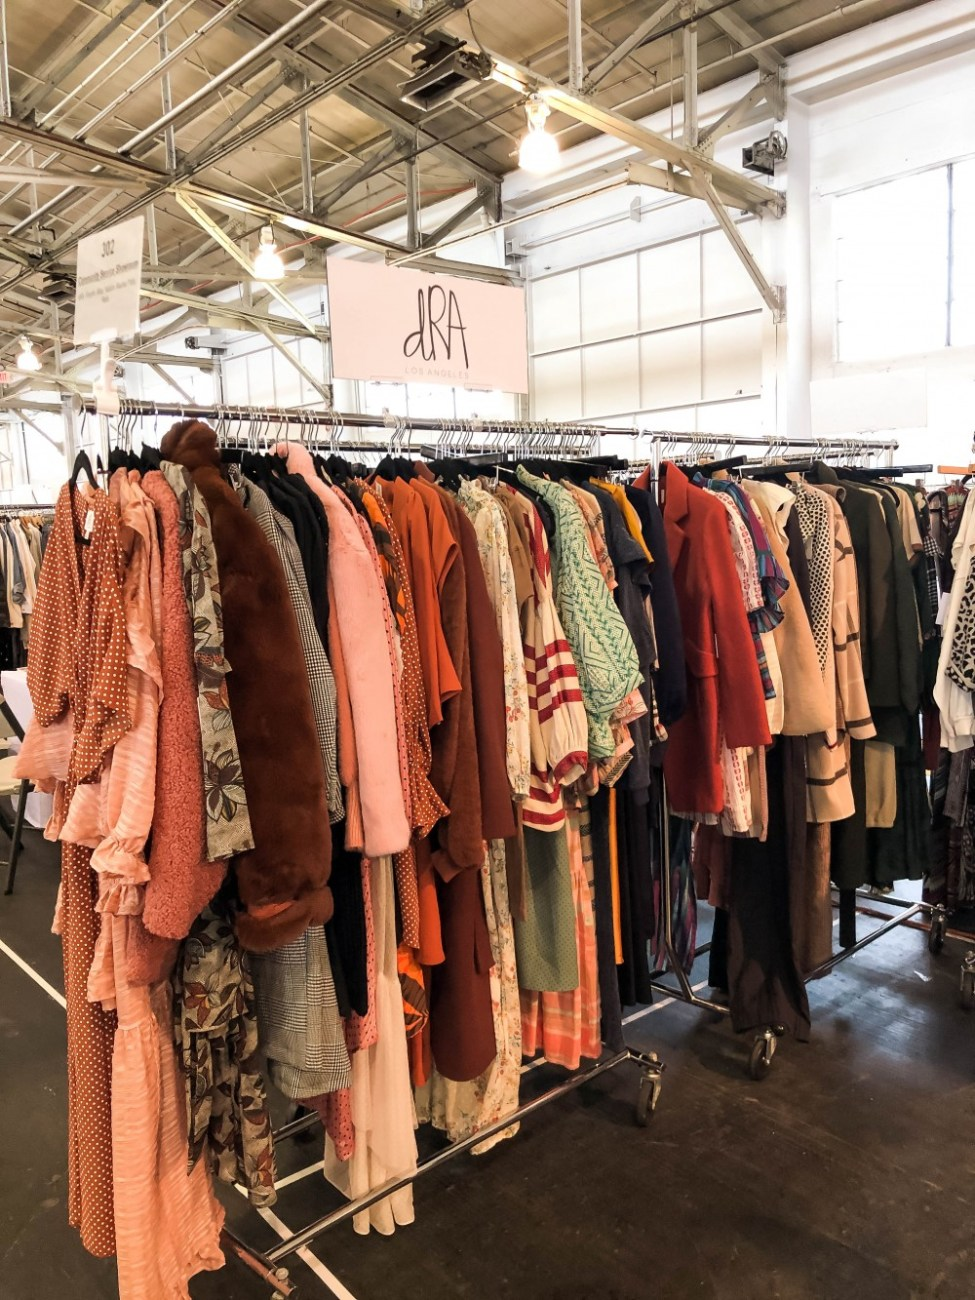 Giving you the inside look at what it's like to be a brand rep on Have Need Want today! If you're curious about what a job in the fashion industry entails, here's a peek at the life of a women's fashion brand rep. Click on the photo to check out the post. #brandrep #womensfashion #fashionindustry